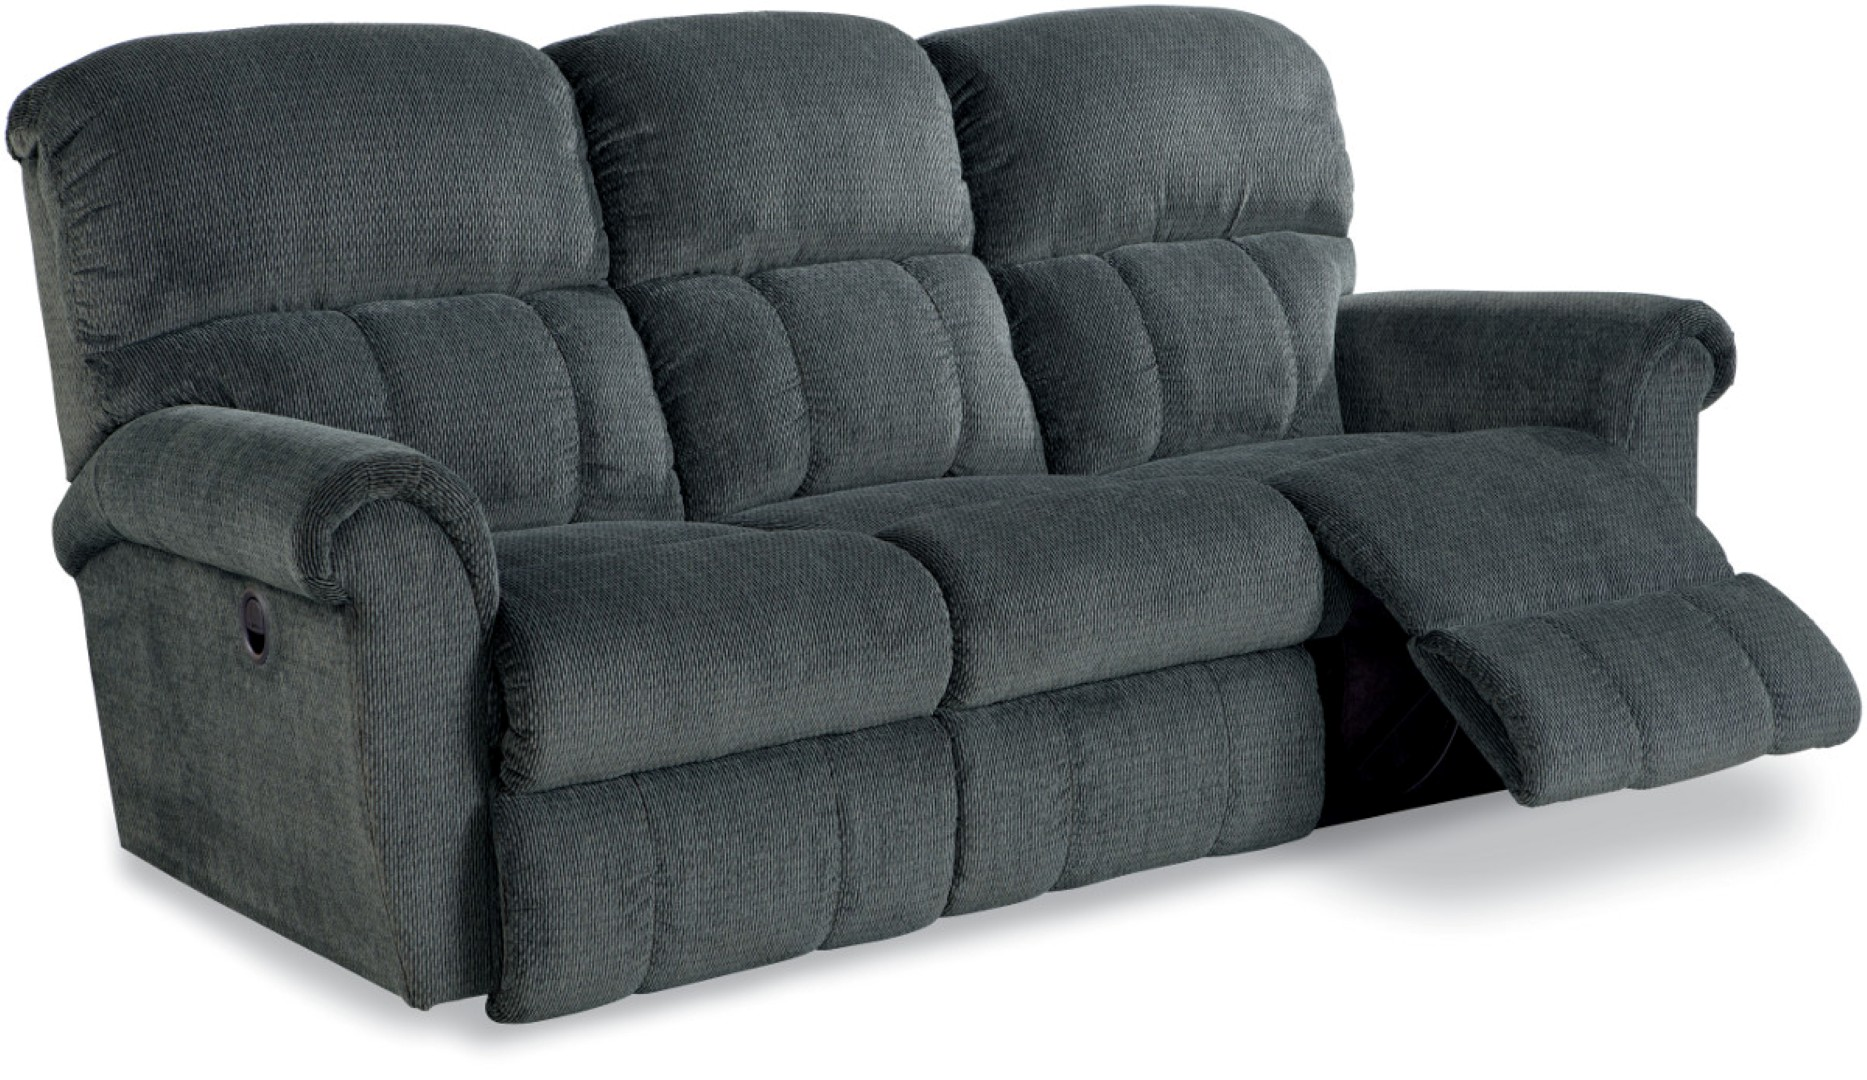 Lazy Boy Reclining Sofa Reviews Lazy Boy Reclining Sofa Cybellegear